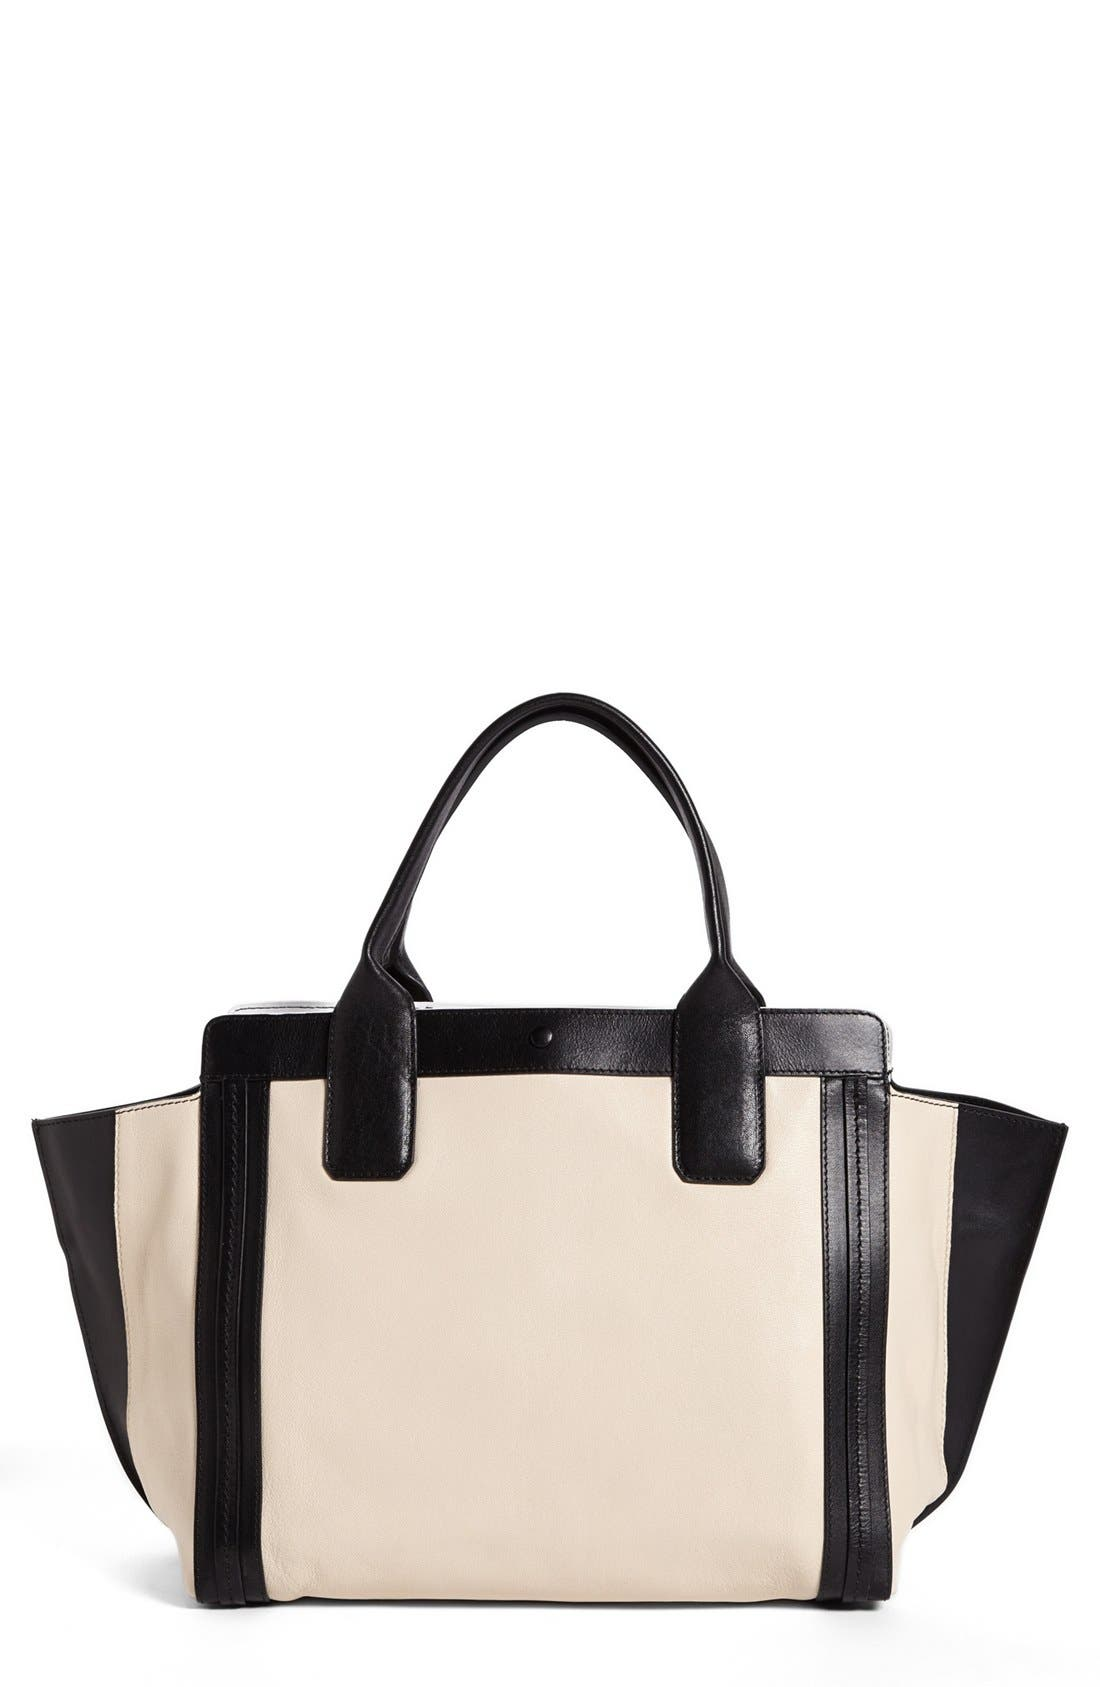 Main Image - Chloé 'Alison - Small' Leather Tote